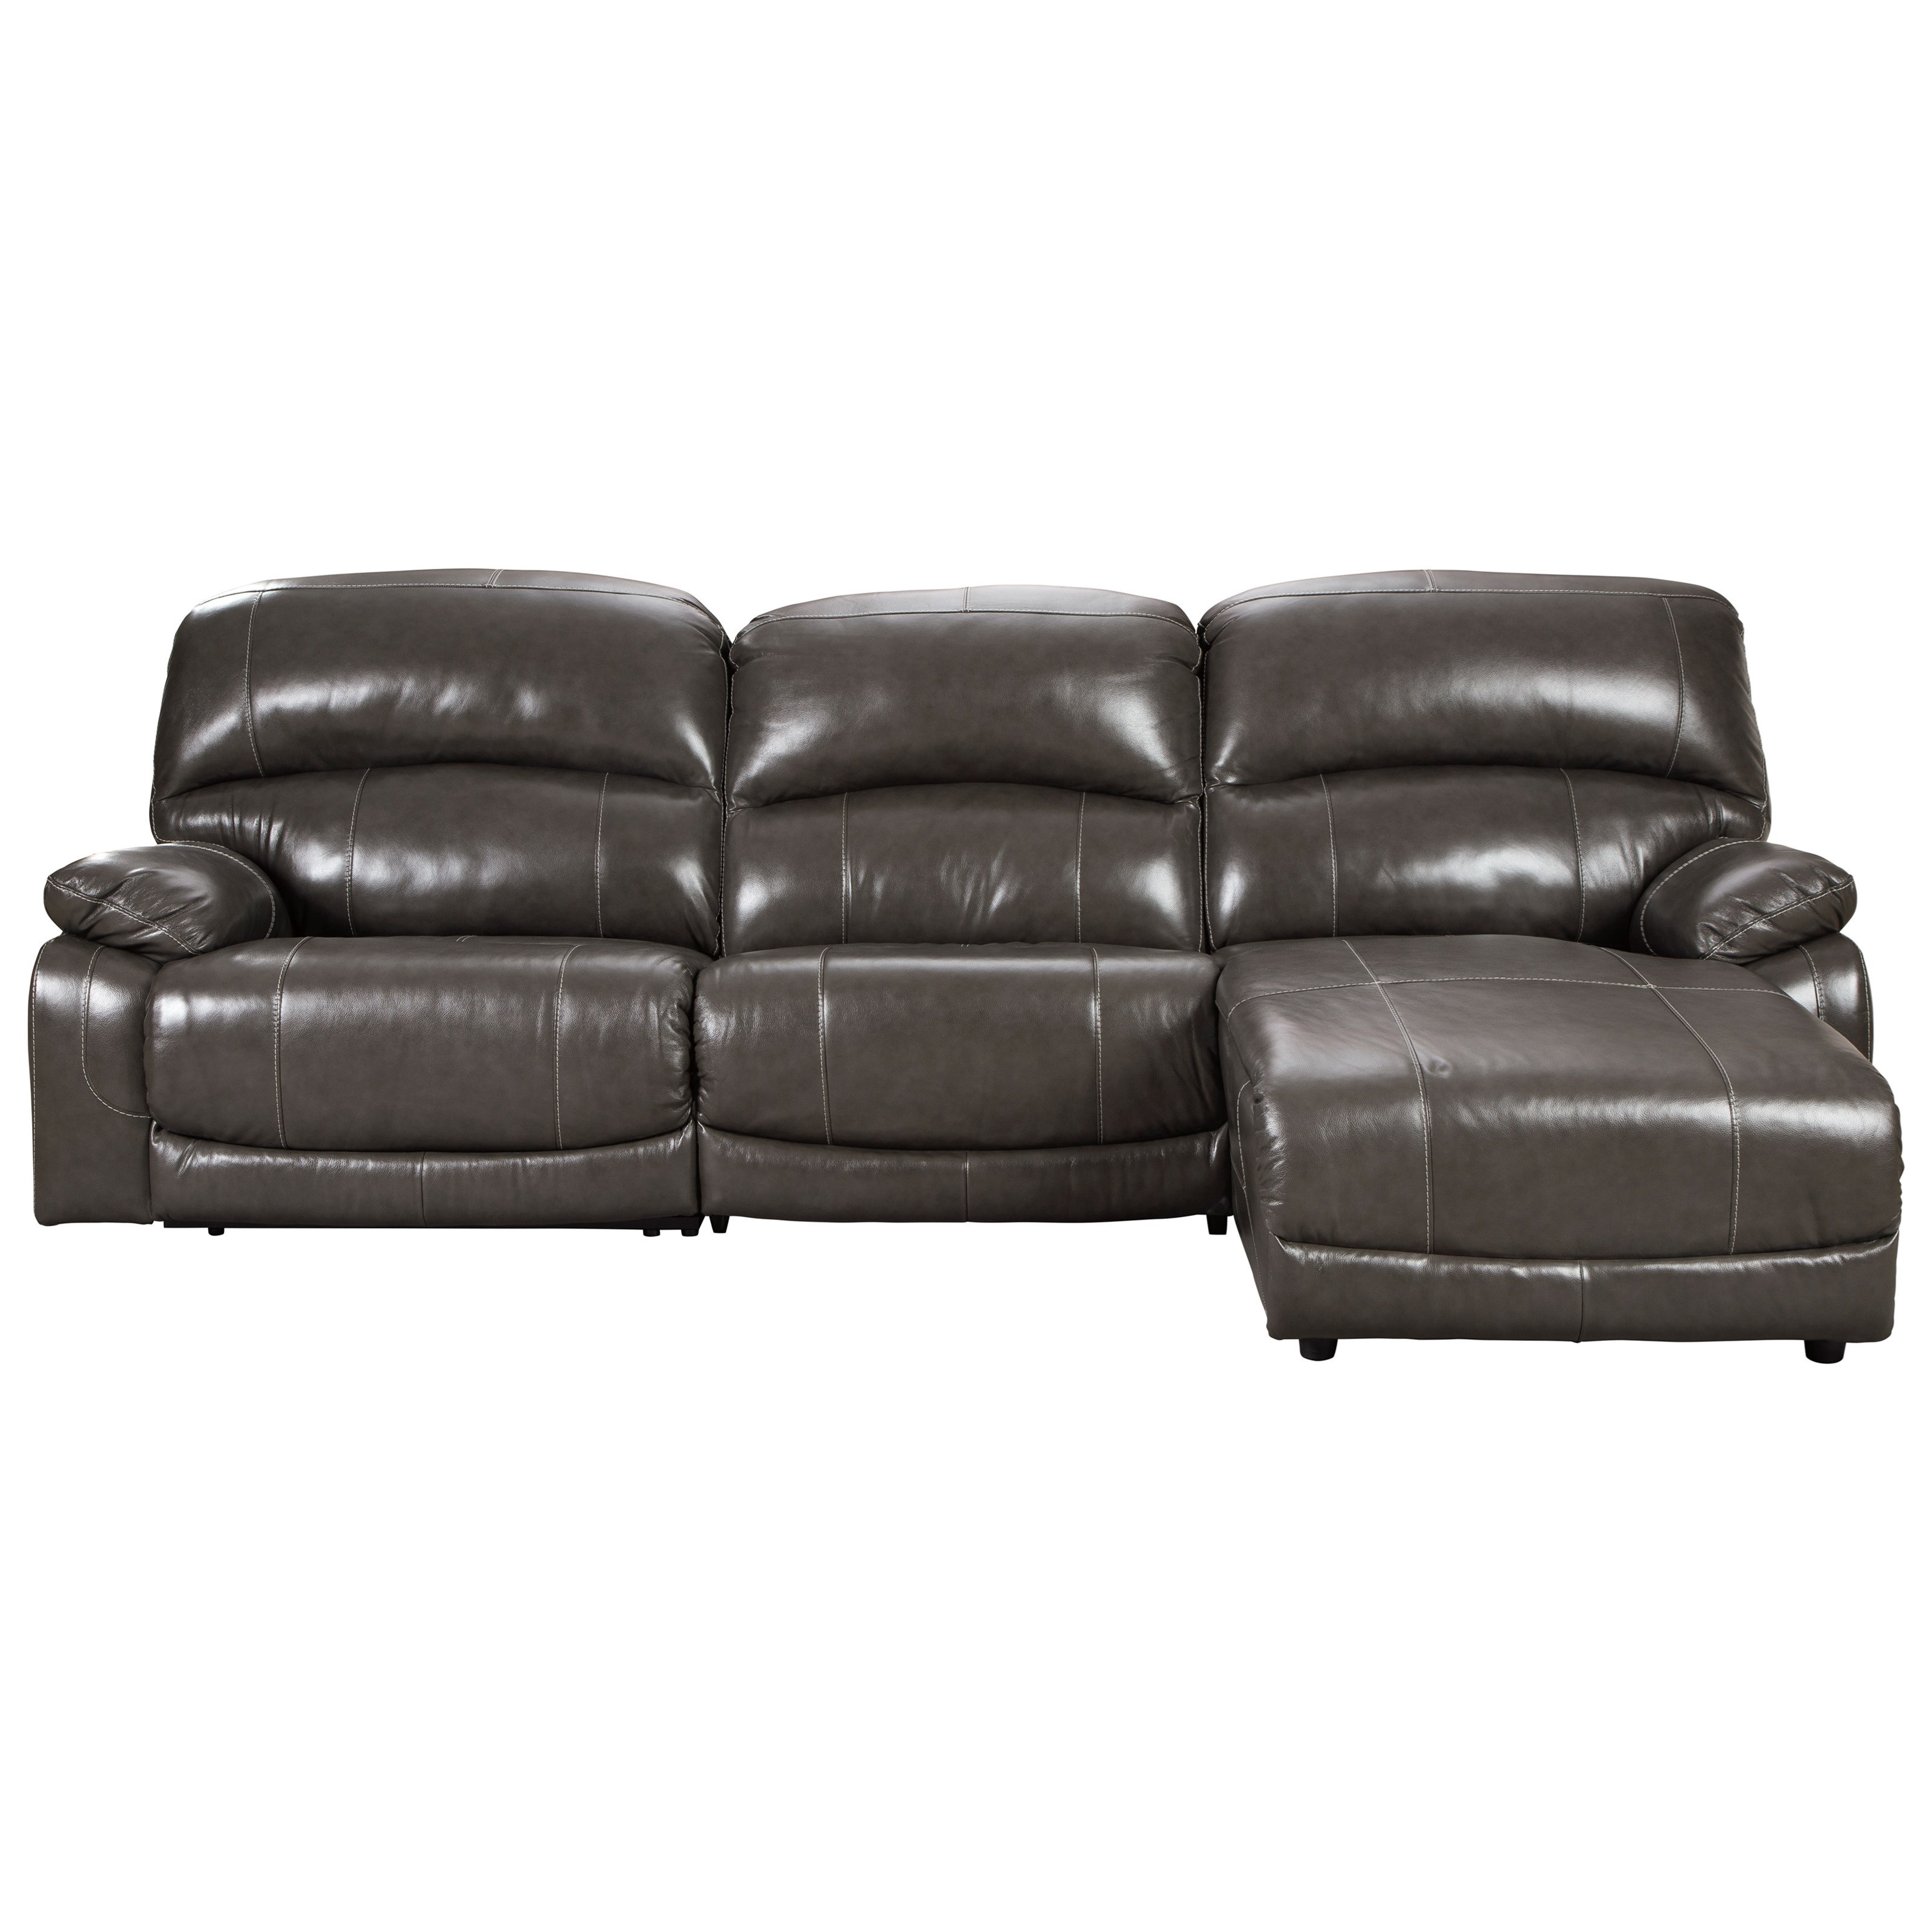 Hallstrung Power Reclining Sectional by Signature Design by Ashley at HomeWorld Furniture